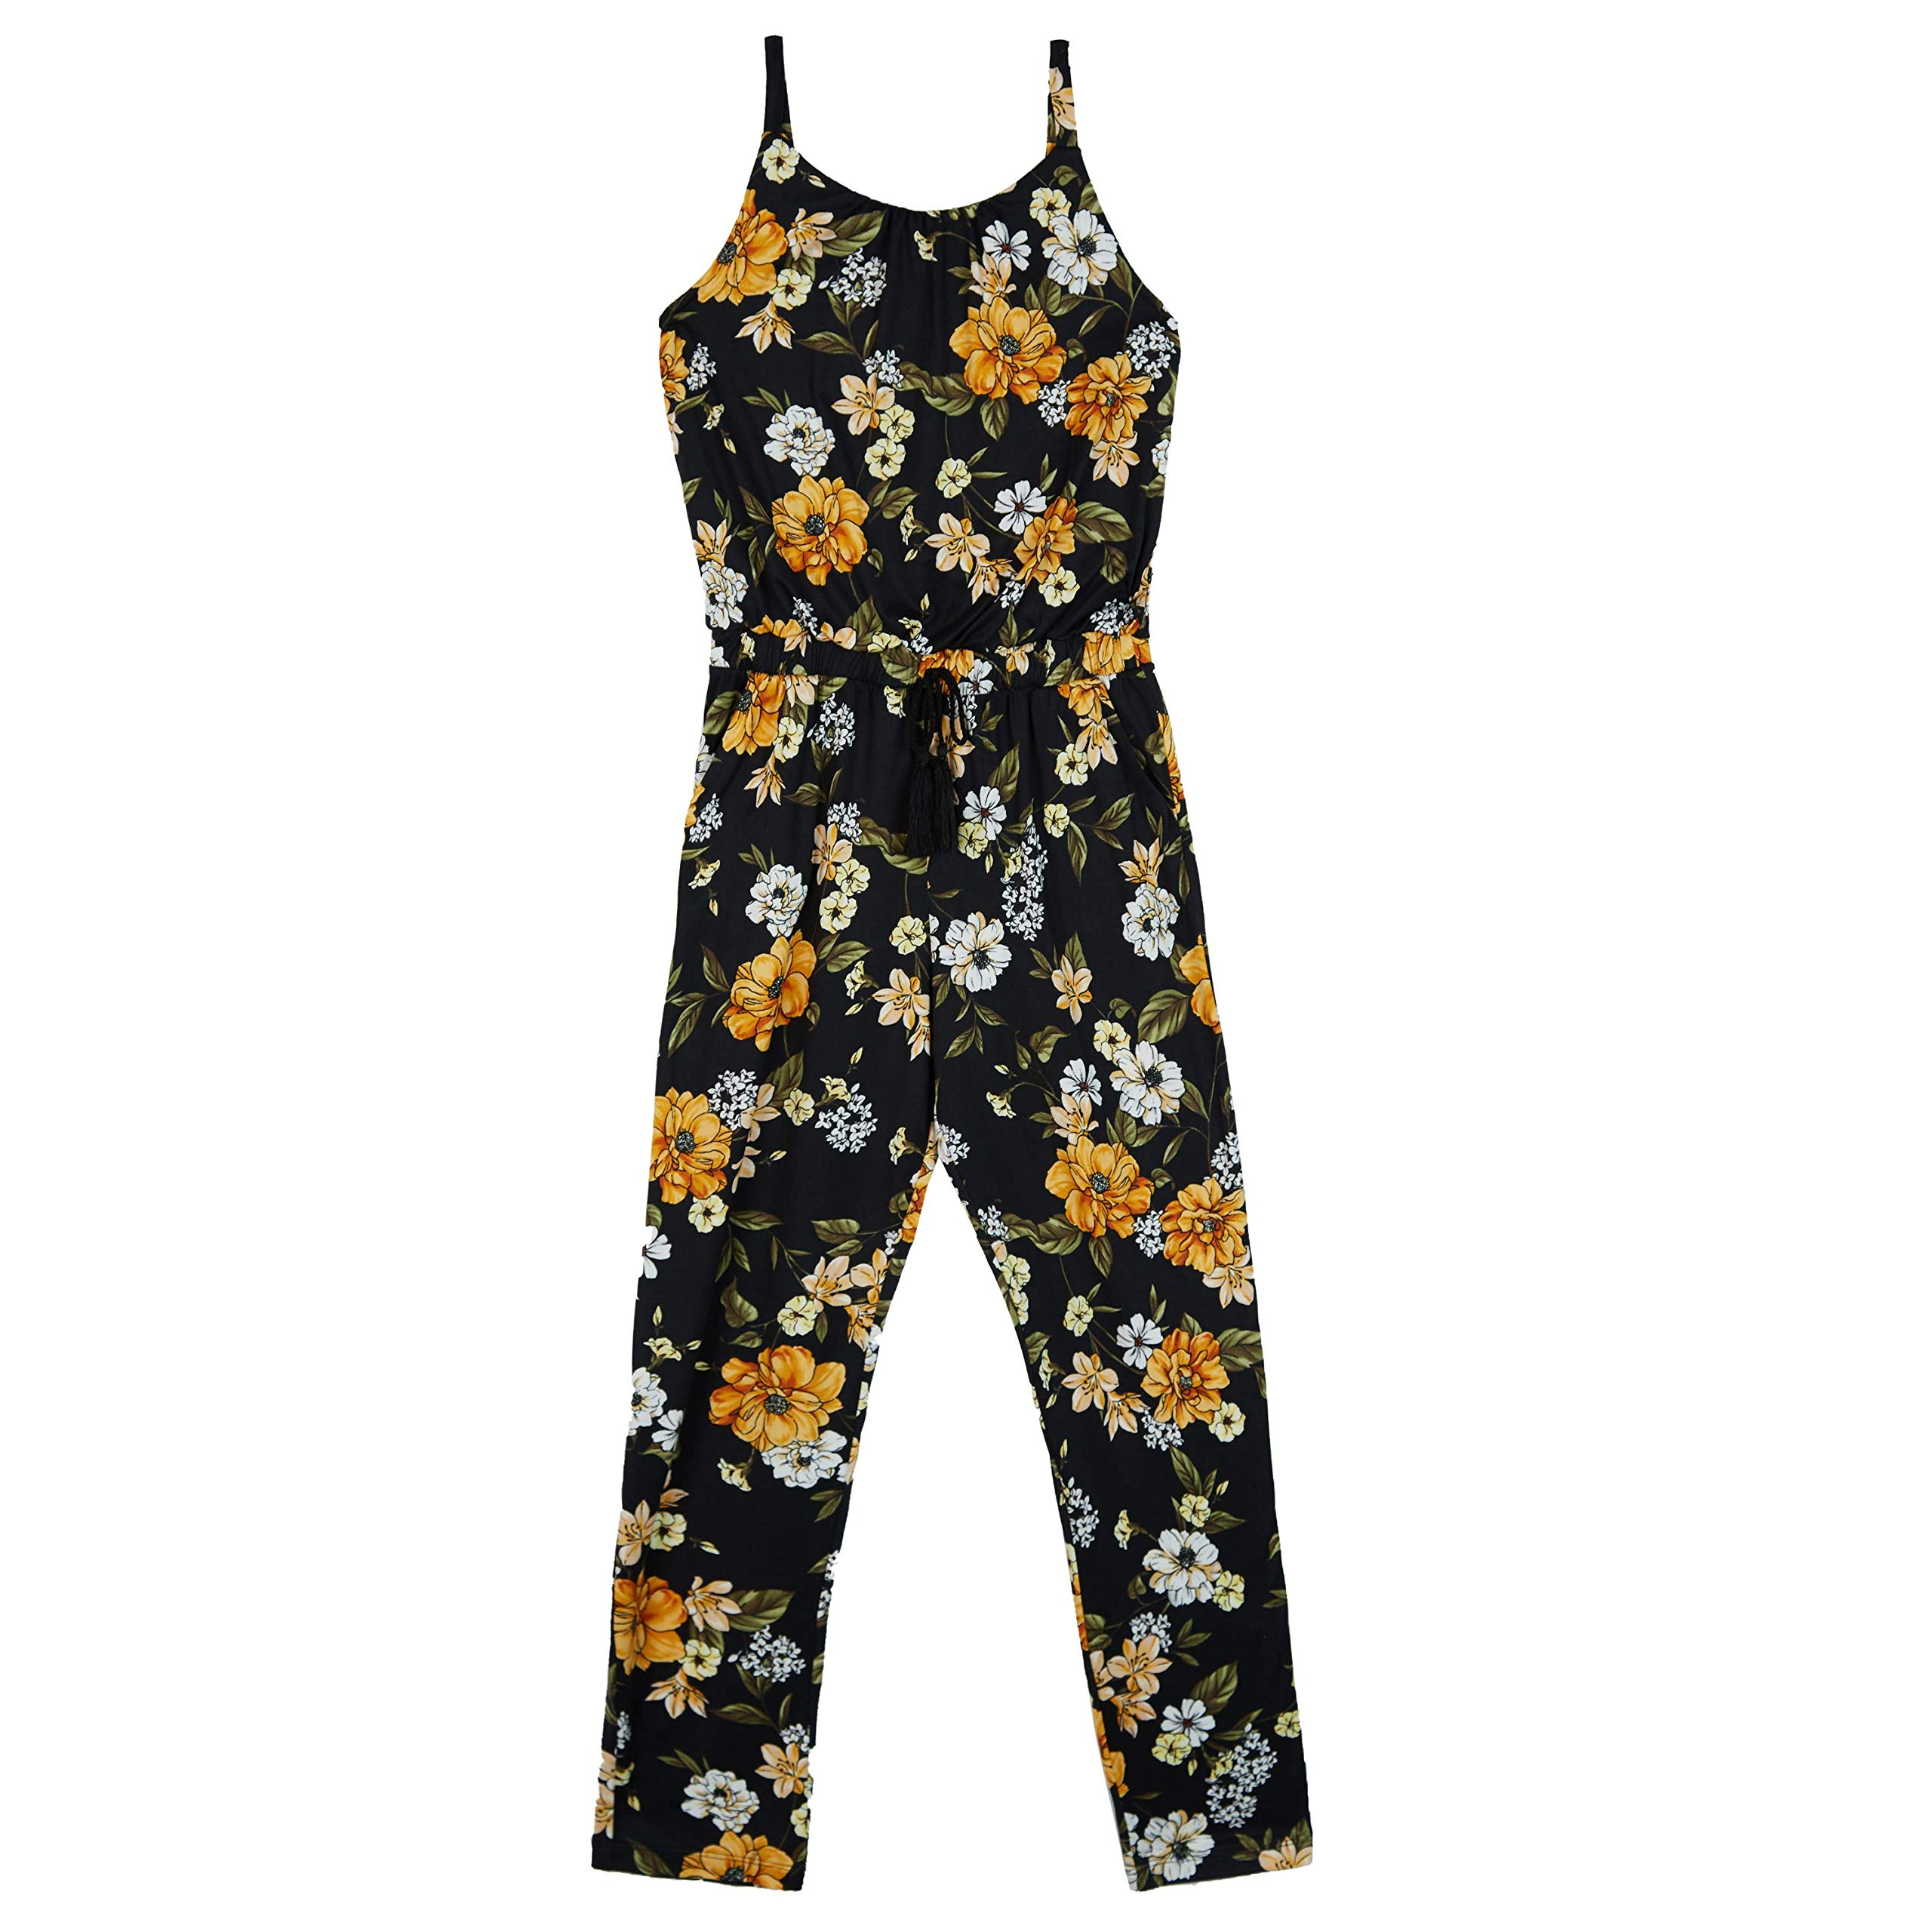 Amy Byer Girls' Big Sleeveless Scoop Neck Jumpsuit, Black/Gold Marigold Bouquet, M by Amy Byer